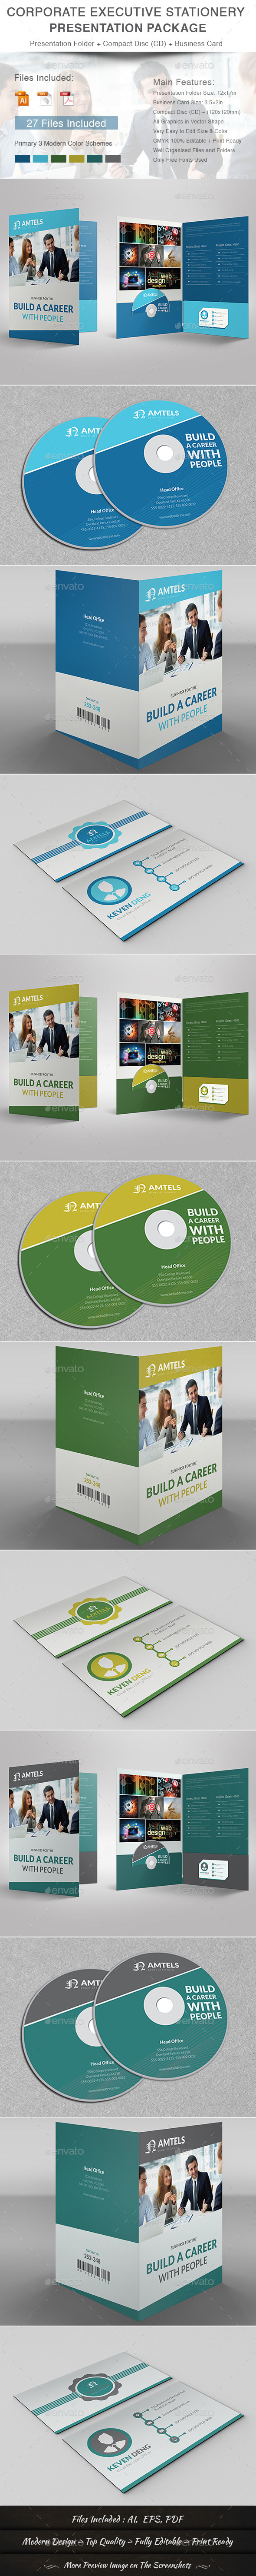 GraphicRiver Corporate Executive Stationery Presentation Packag 11467151